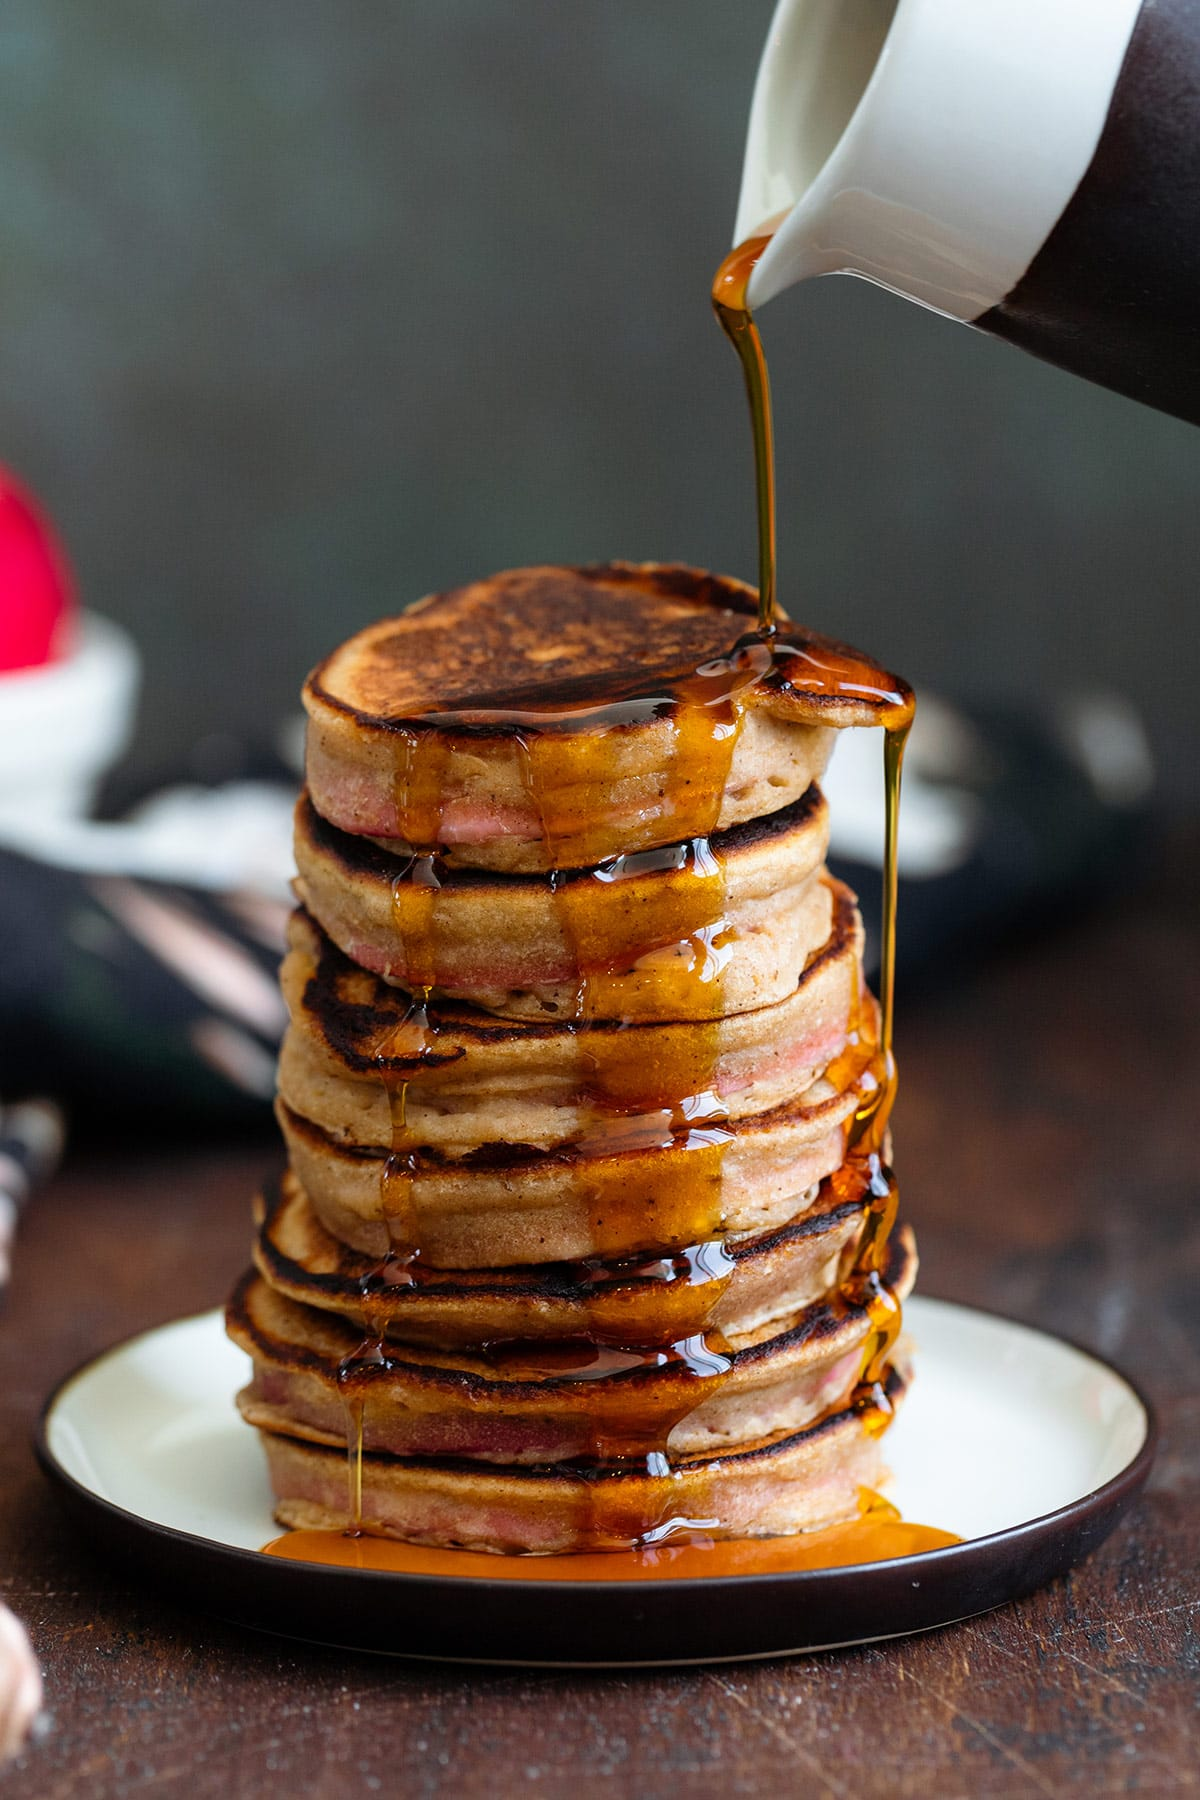 Maple syrup being poured over a stack of pancakes on a small plate on a dark wooden background.